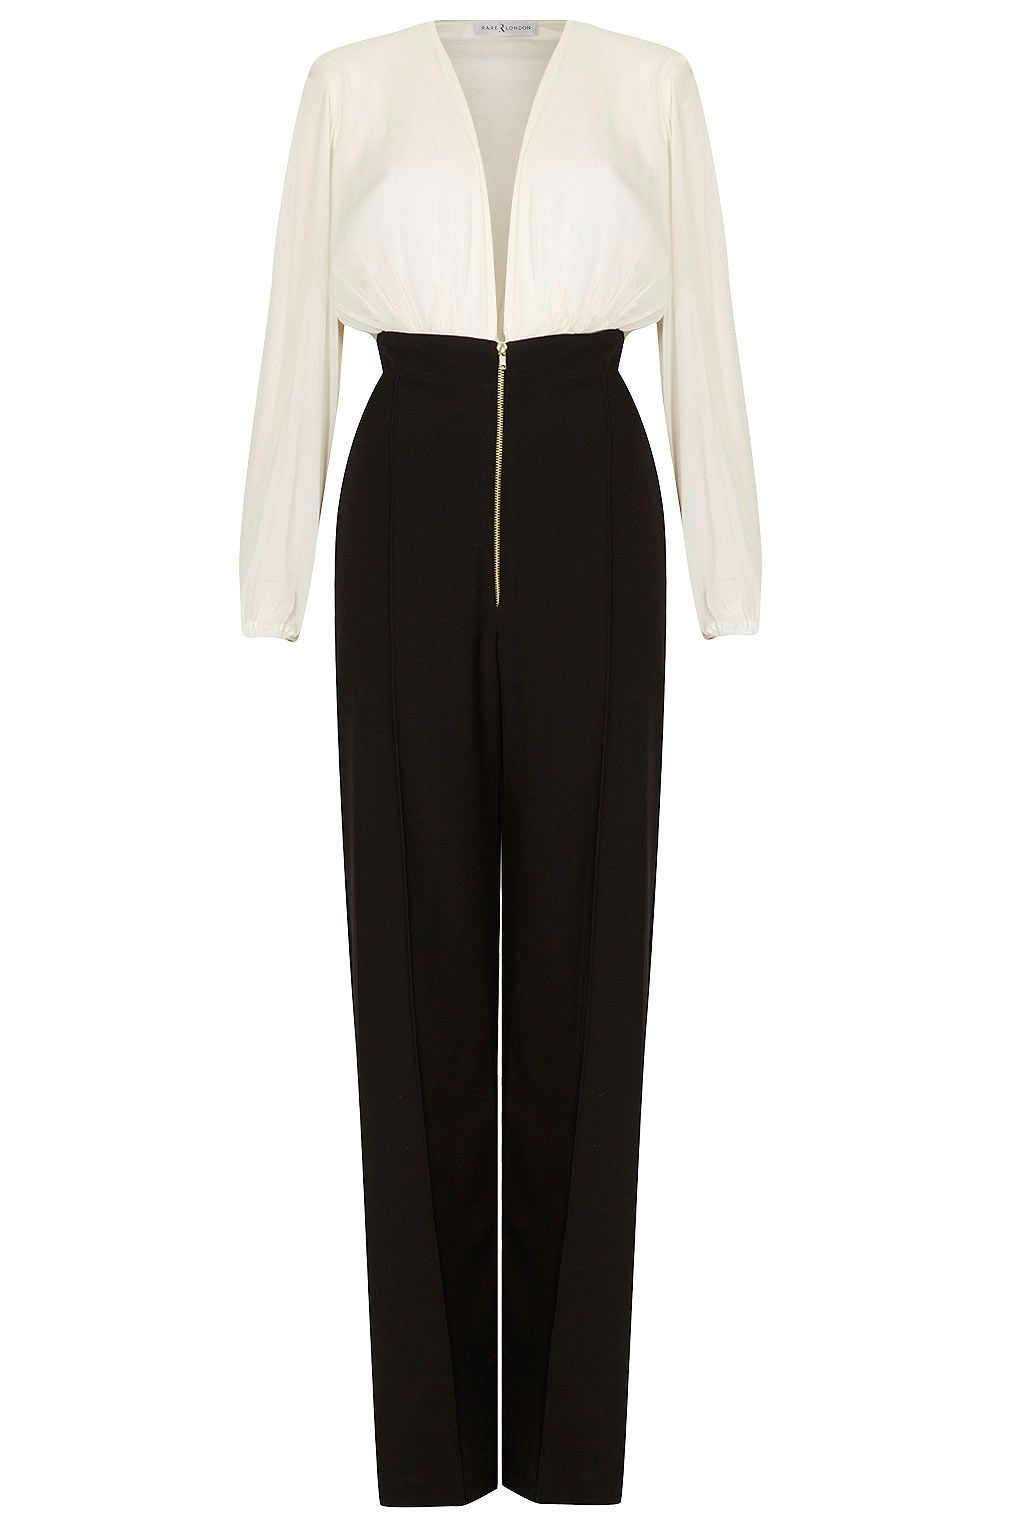 Contrast plunge neck jumpsuit by rare clothing brands clothing